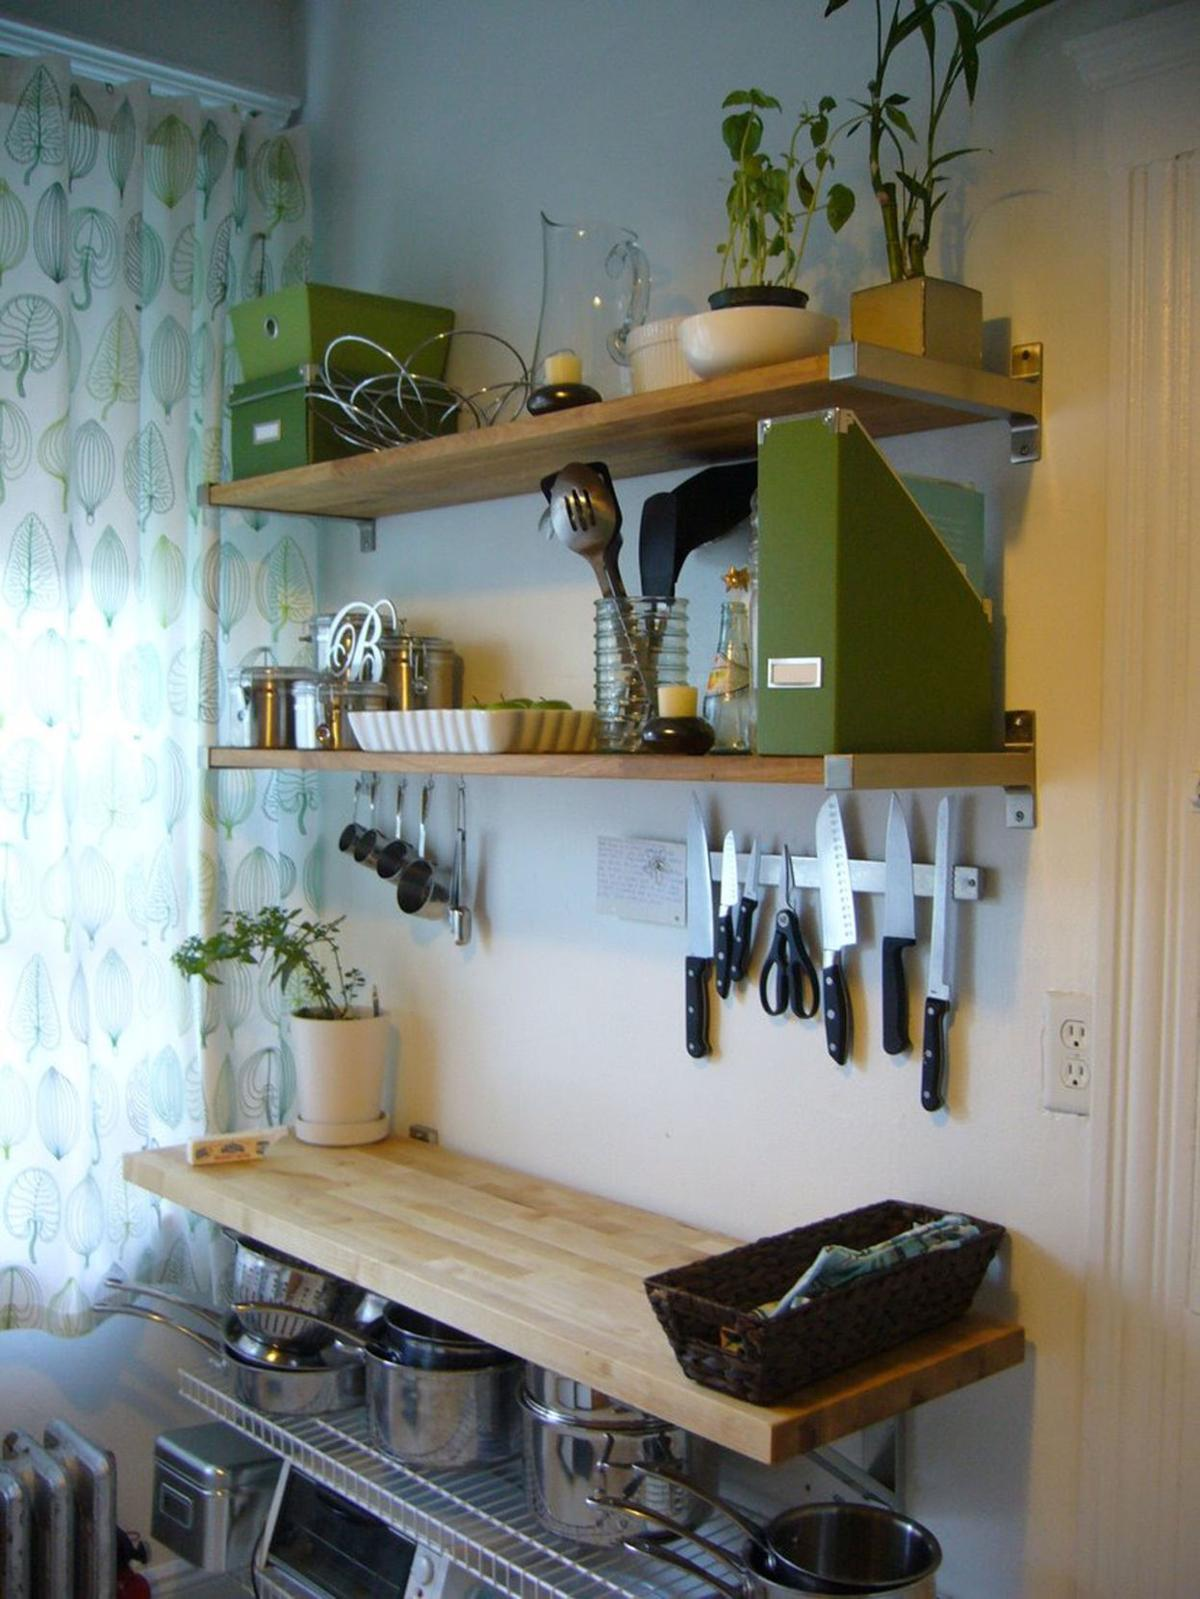 Small Kitchen Space How To Maximize Storage And Countertop Space In A Small Kitchen